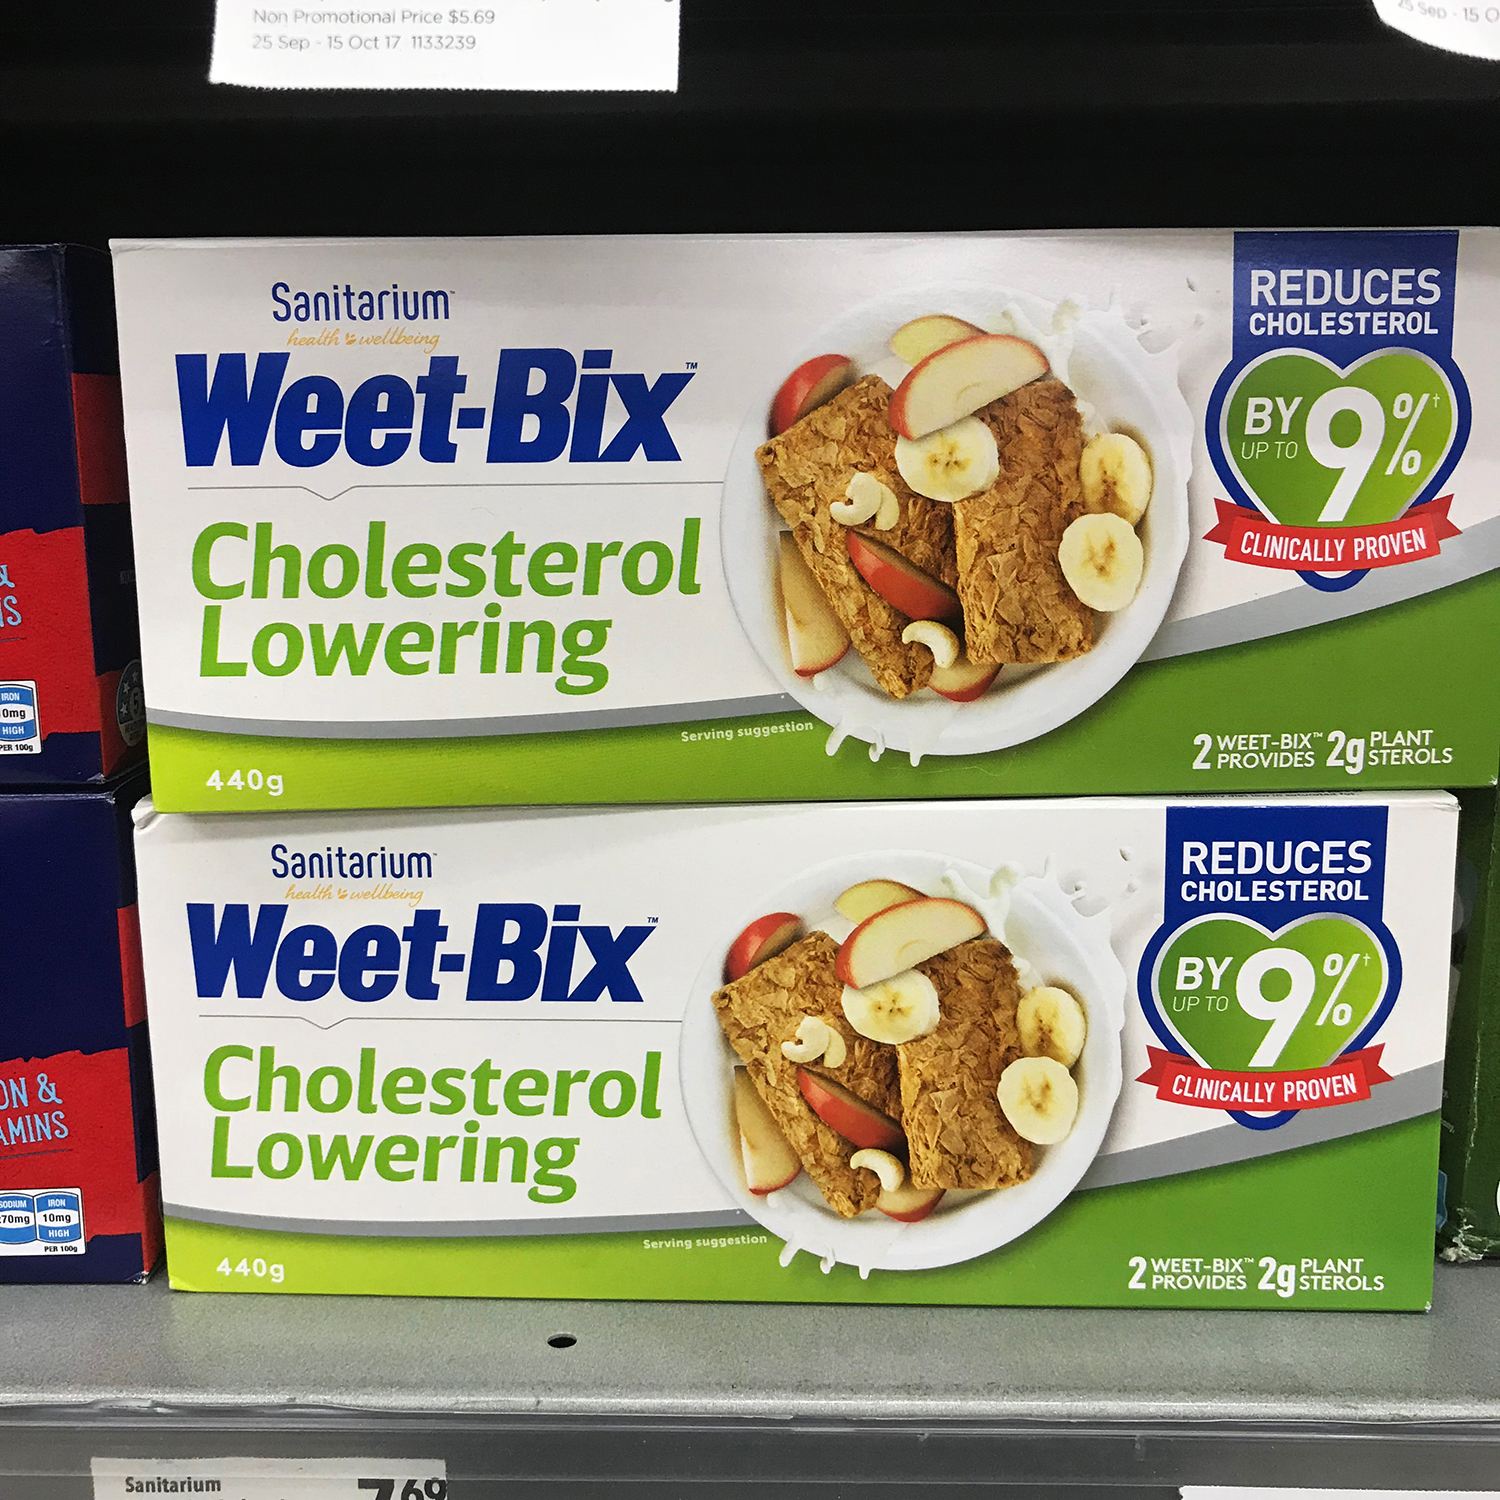 Another anti-cholesterol option